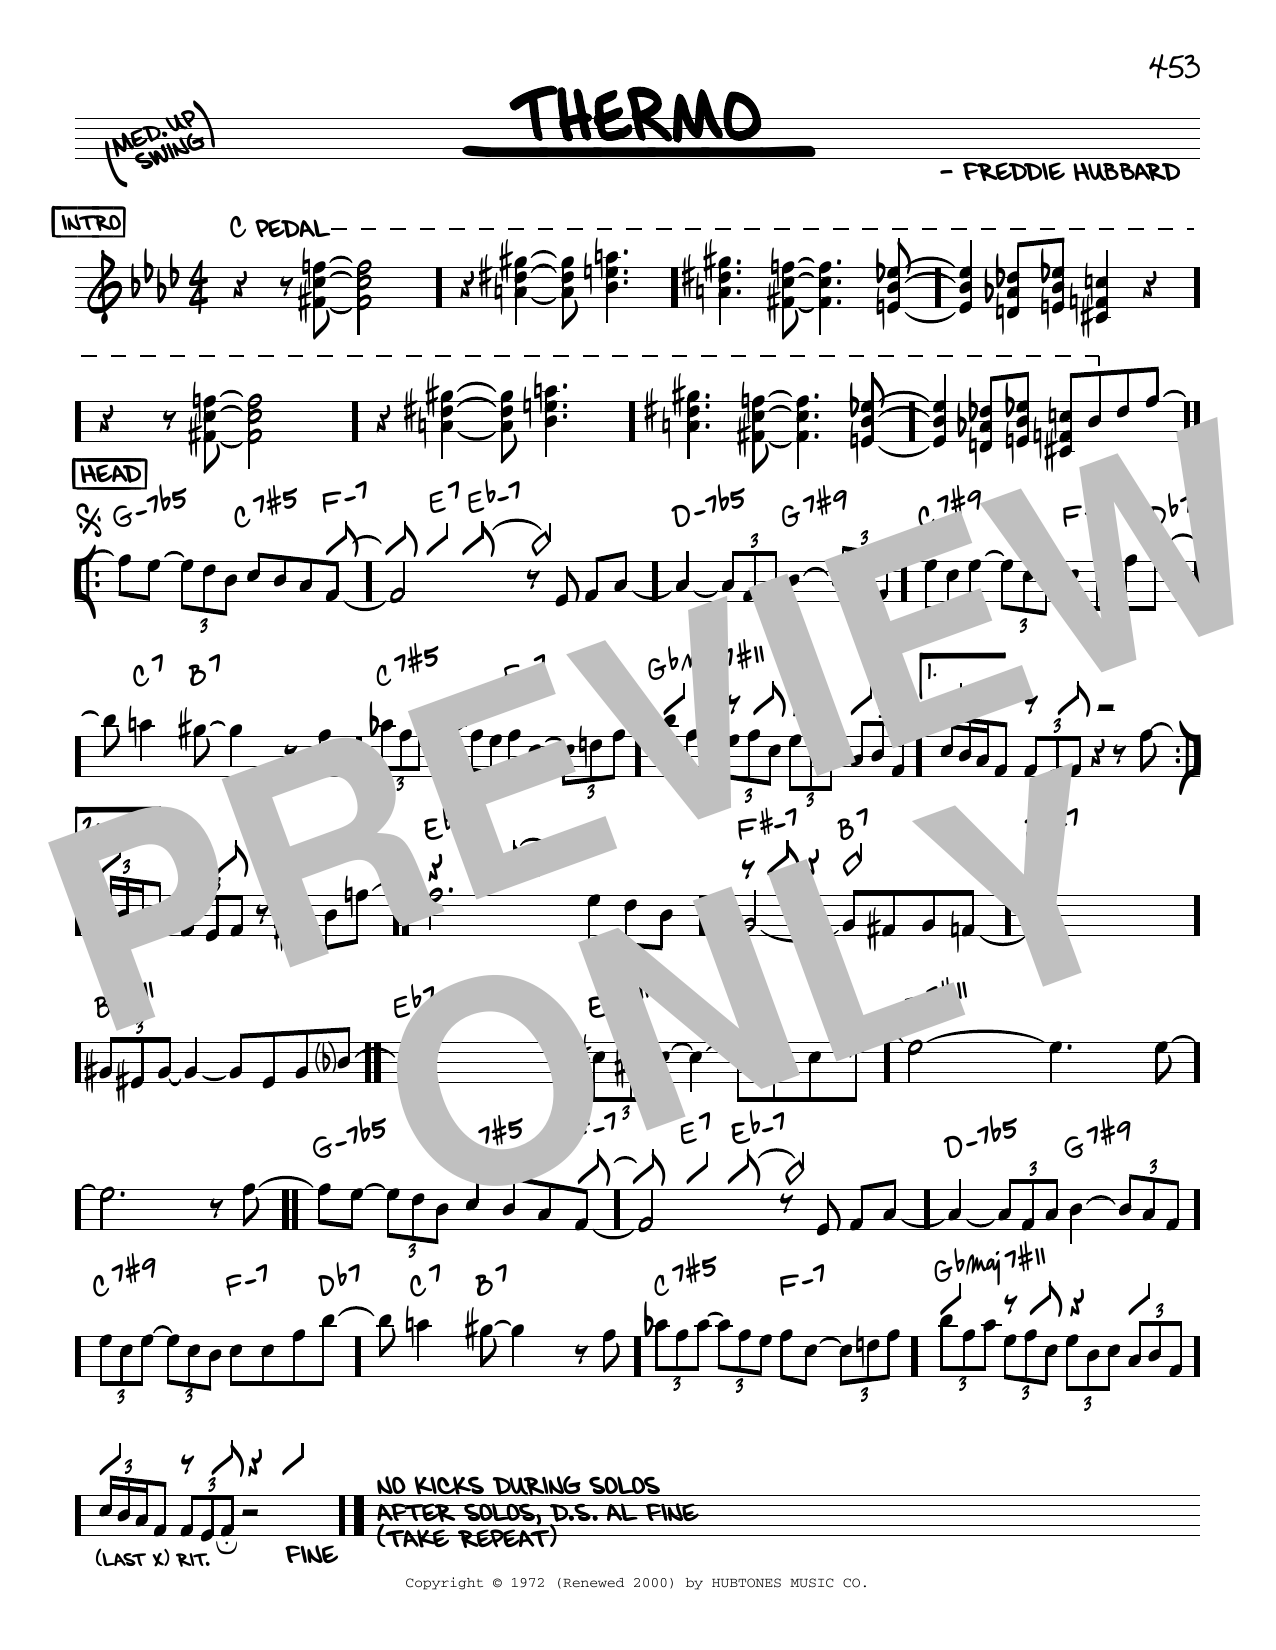 Freddie Hubbard Thermo sheet music notes and chords. Download Printable PDF.